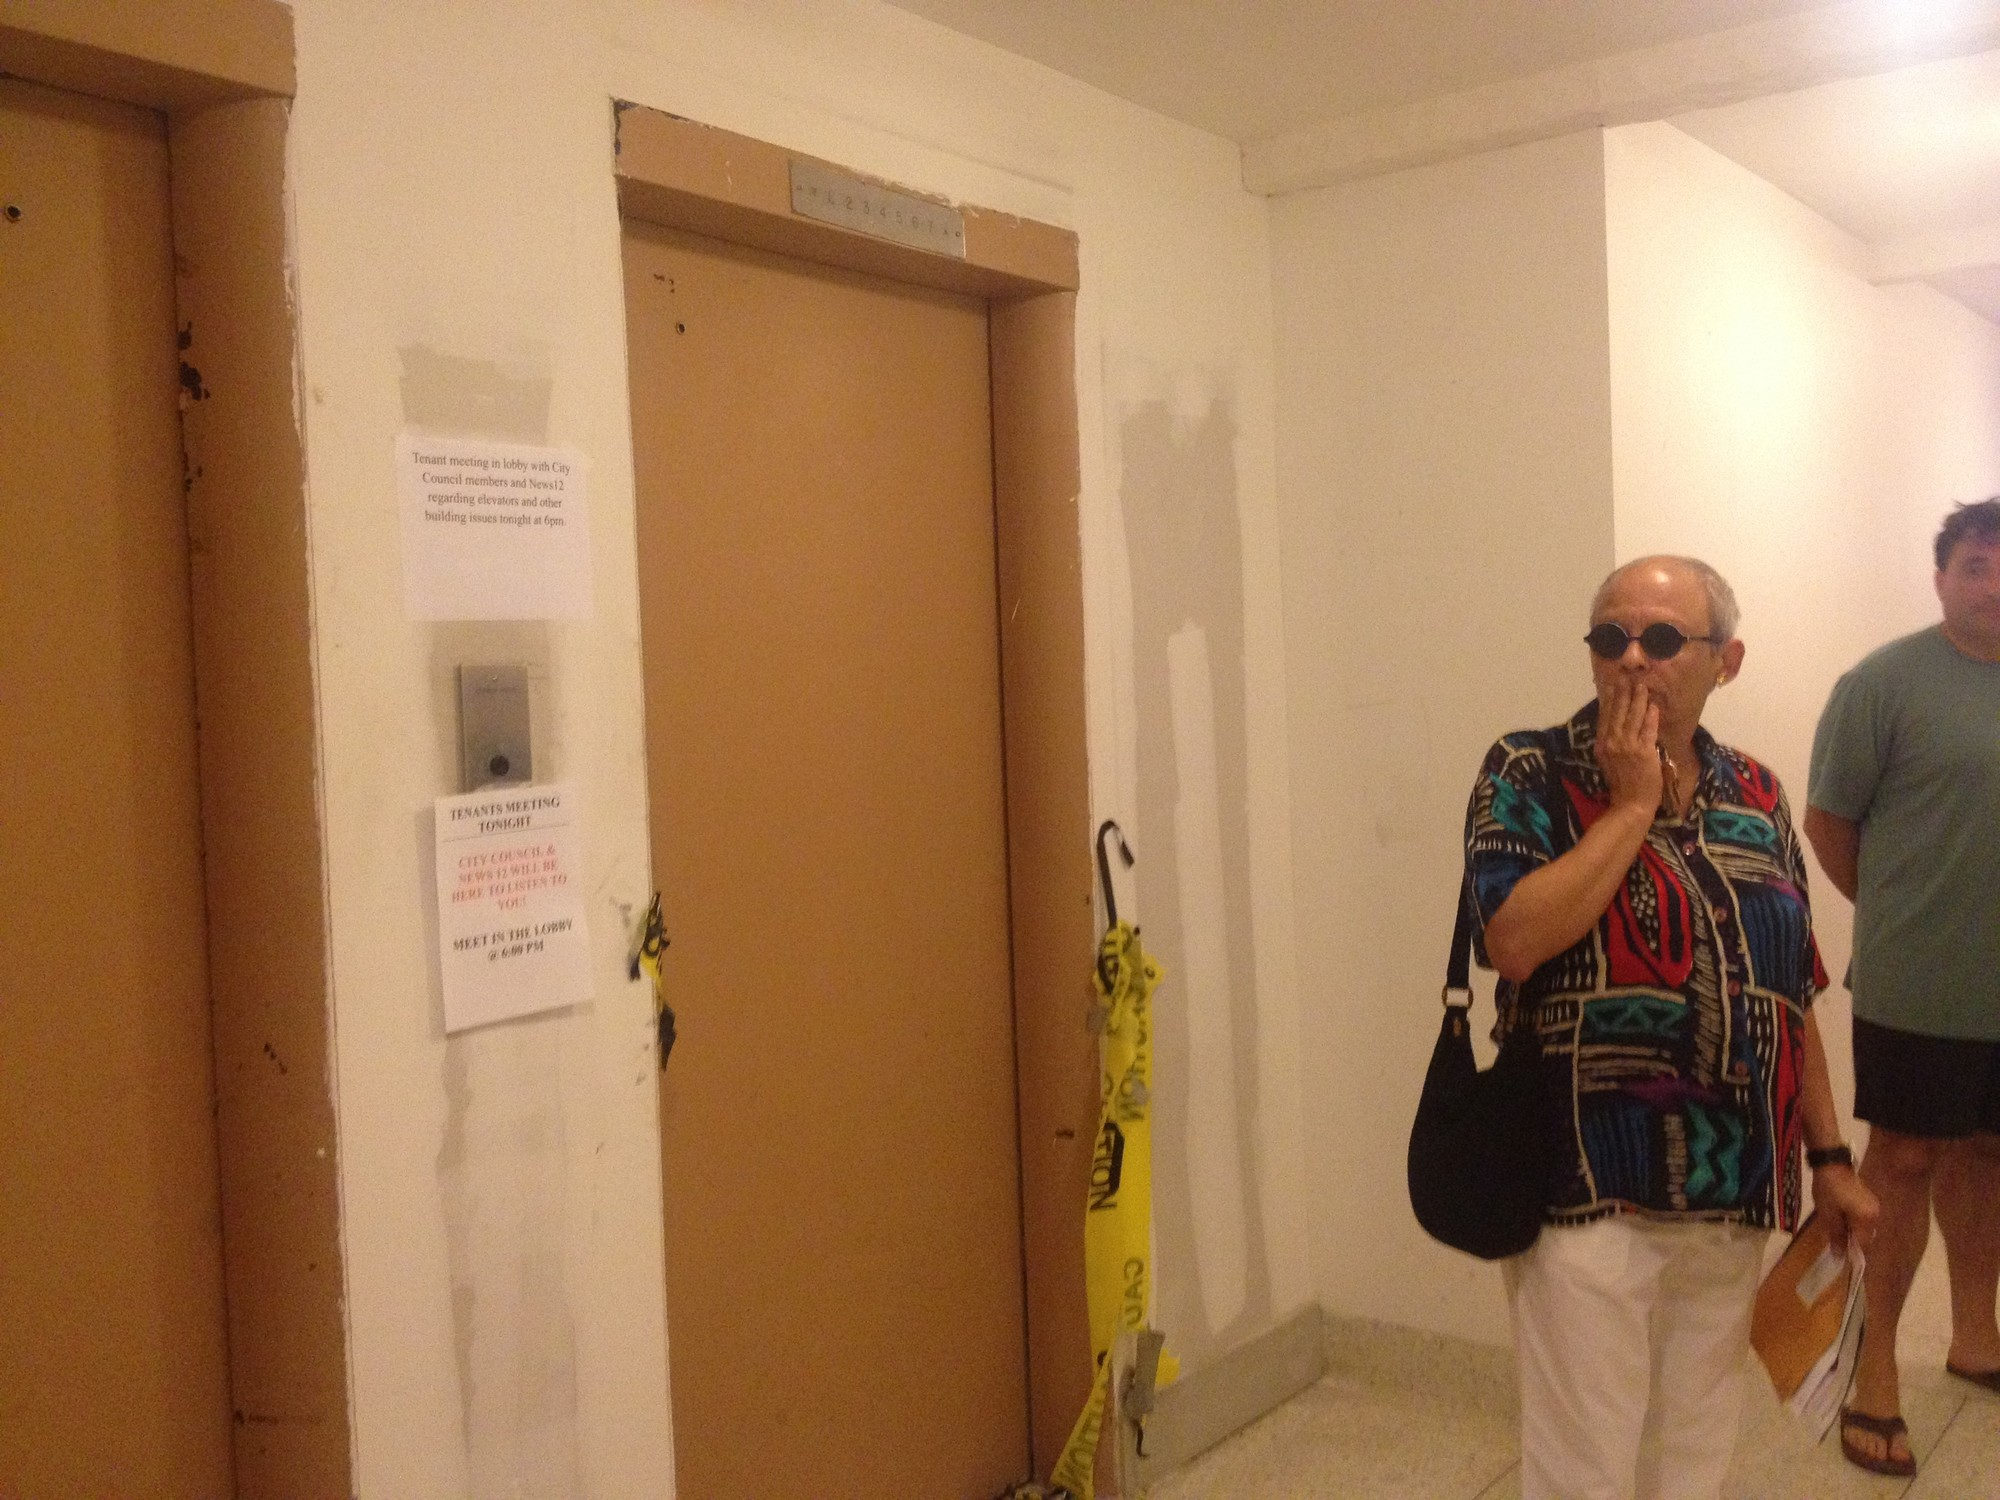 Tenants at 10 Monroe Blvd. said that they hope repairs to the building's two elevators are made soon.